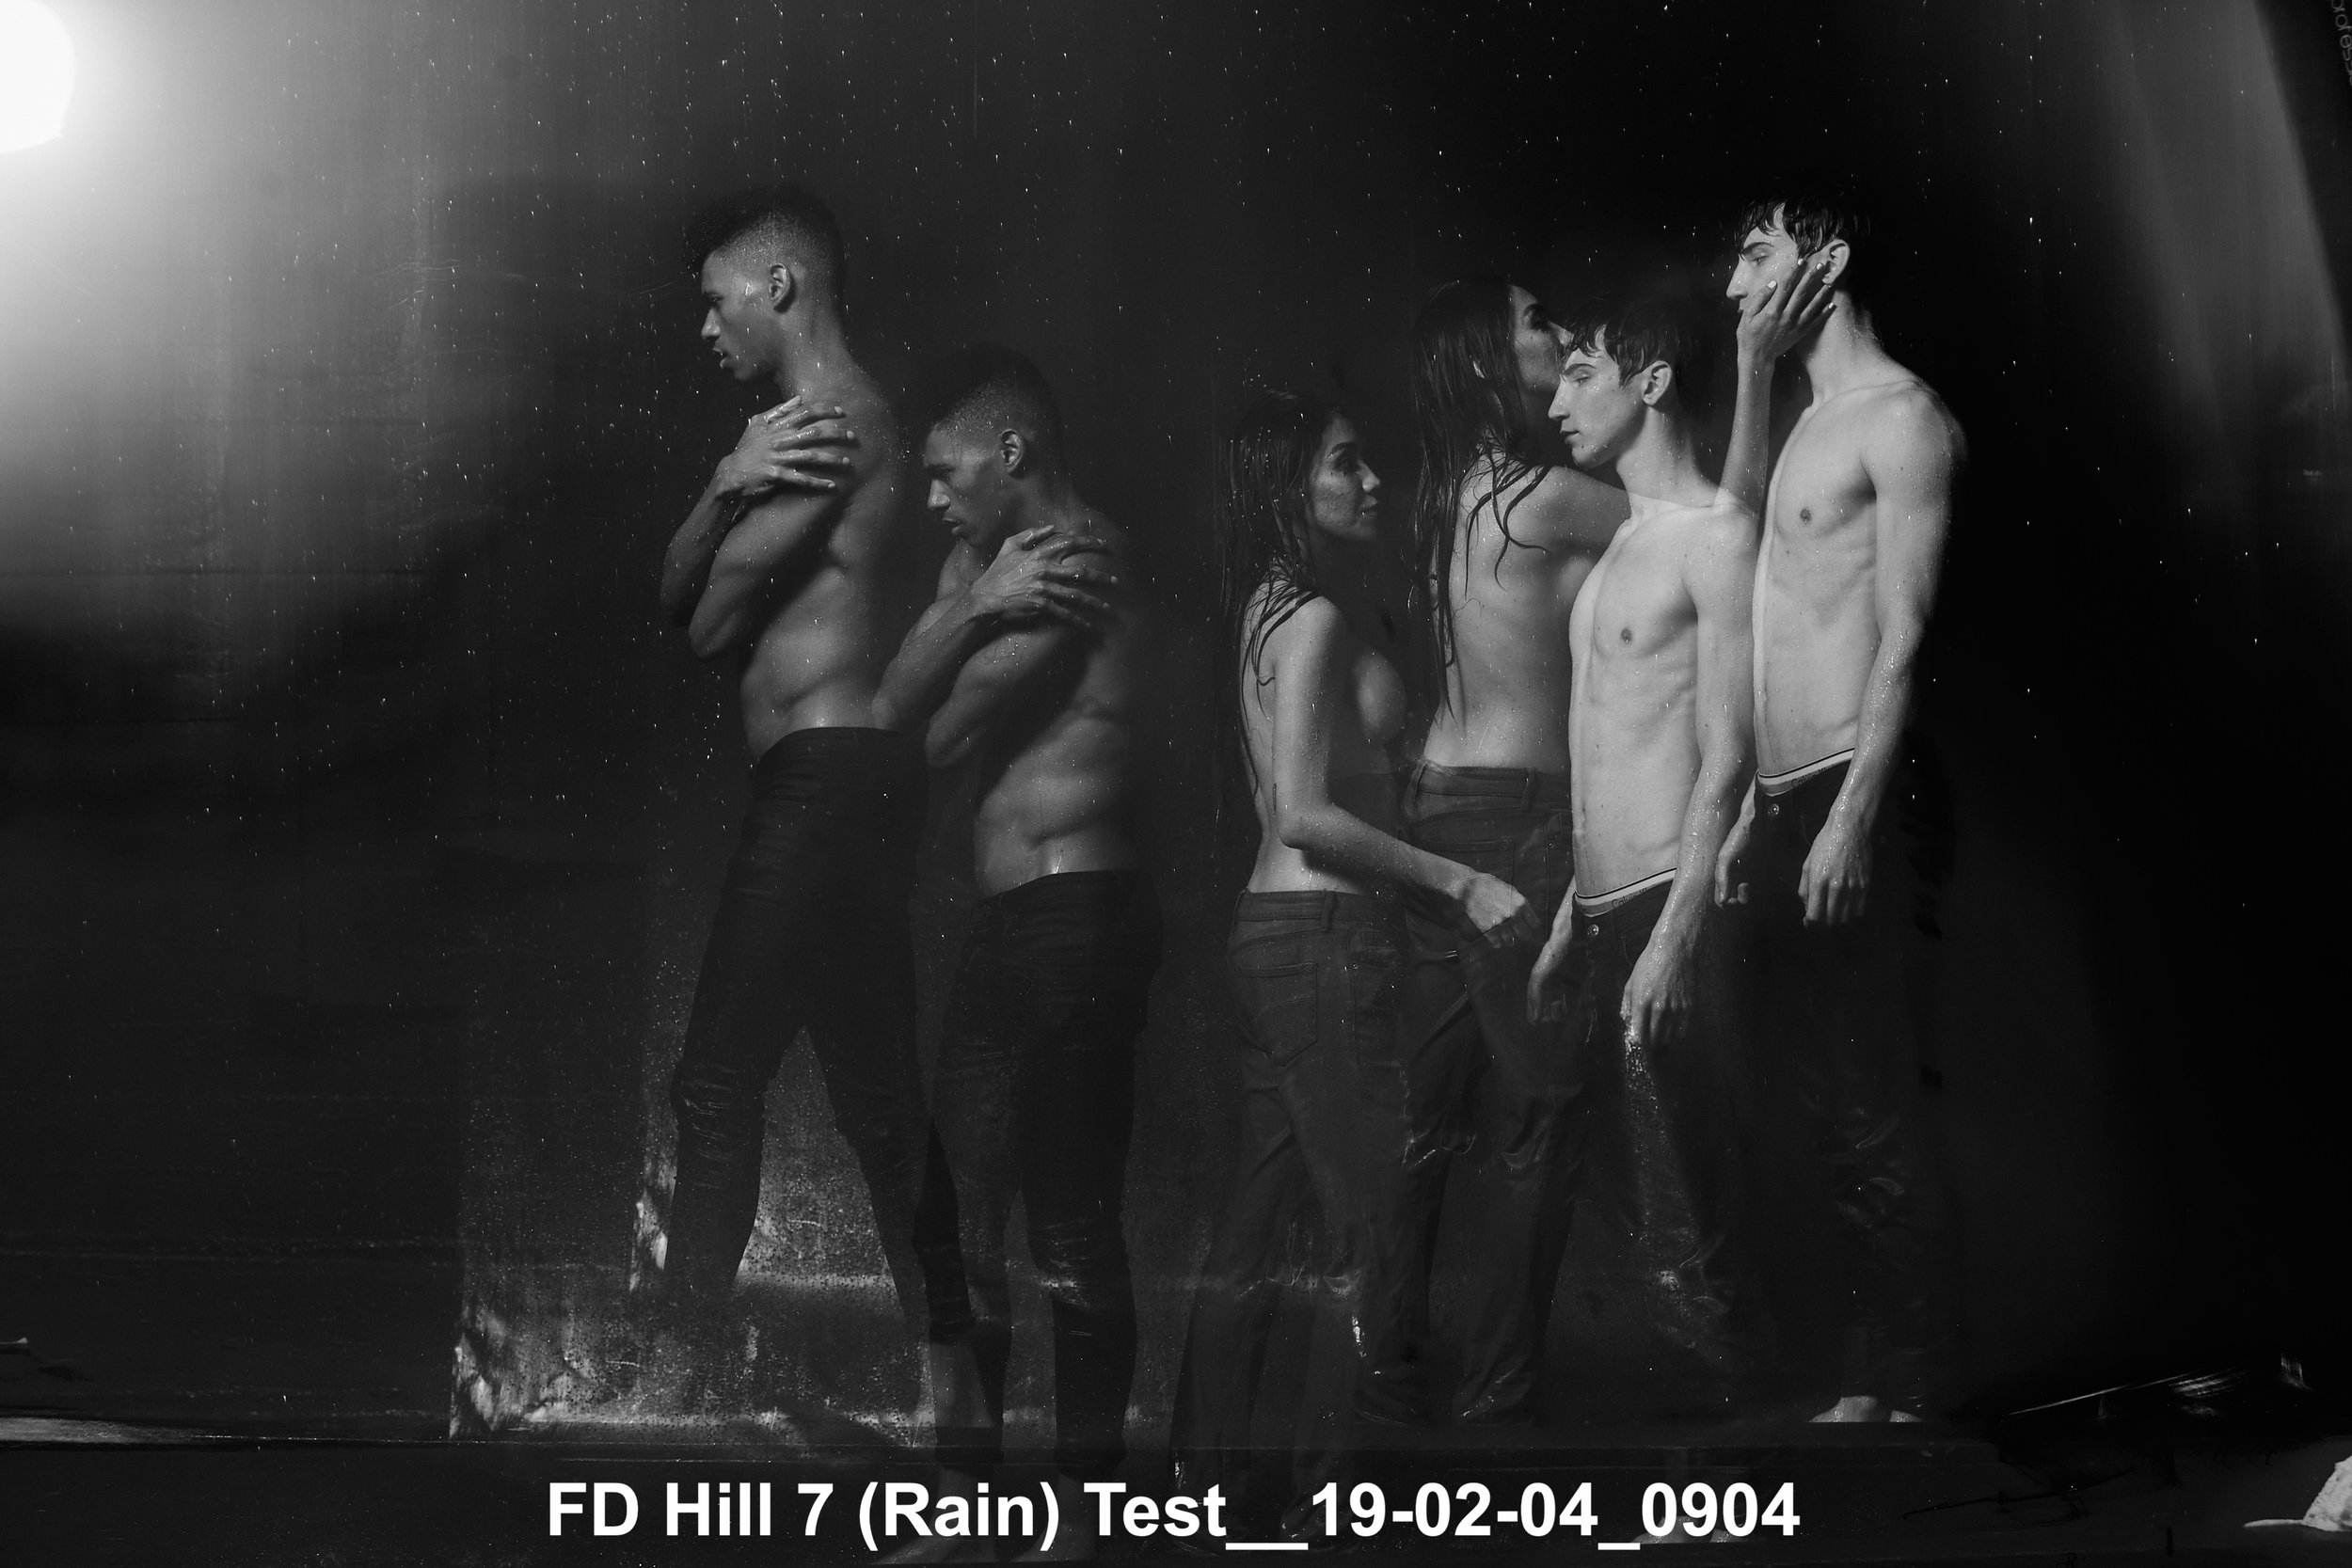 FD Hill 7 (Rain) Test__19-02-04_0904.jpg